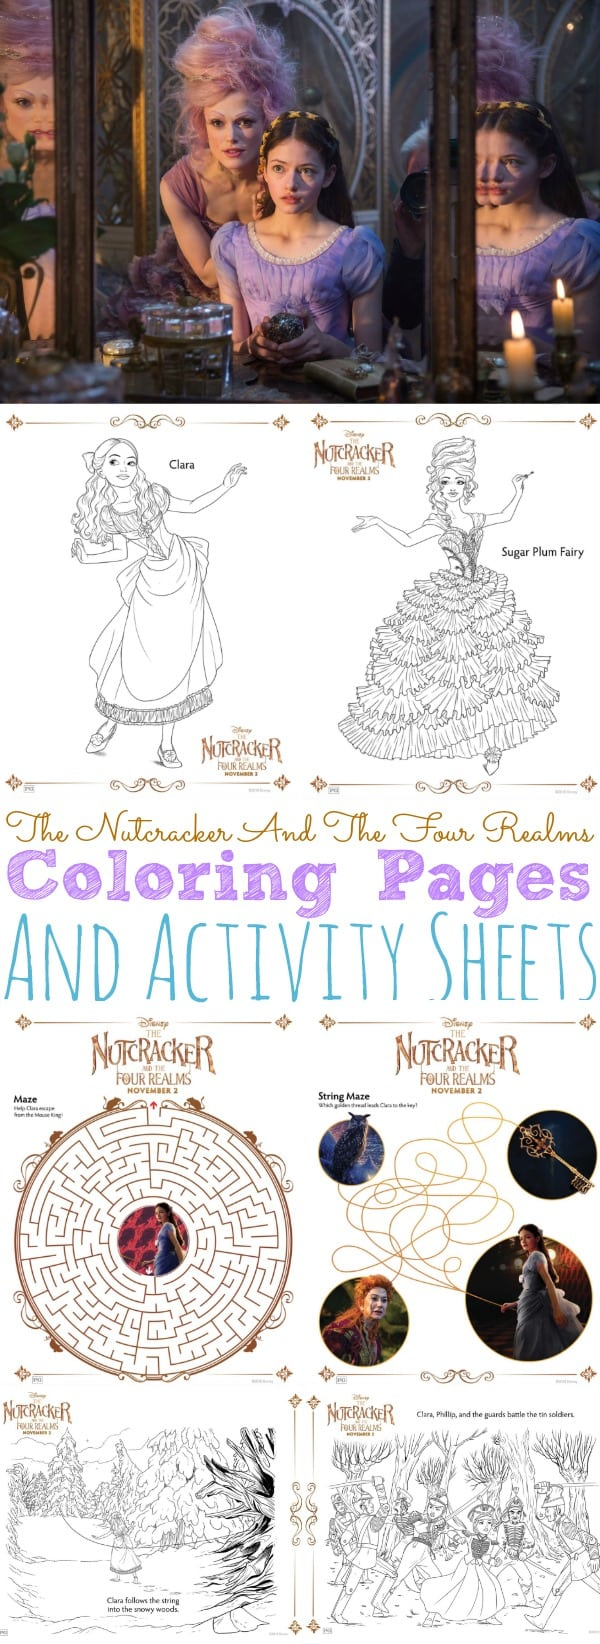 Free The Nutcracker And The Four Realms Coloring Pages and Activity Sheets #DisneysNutcrackerEvent